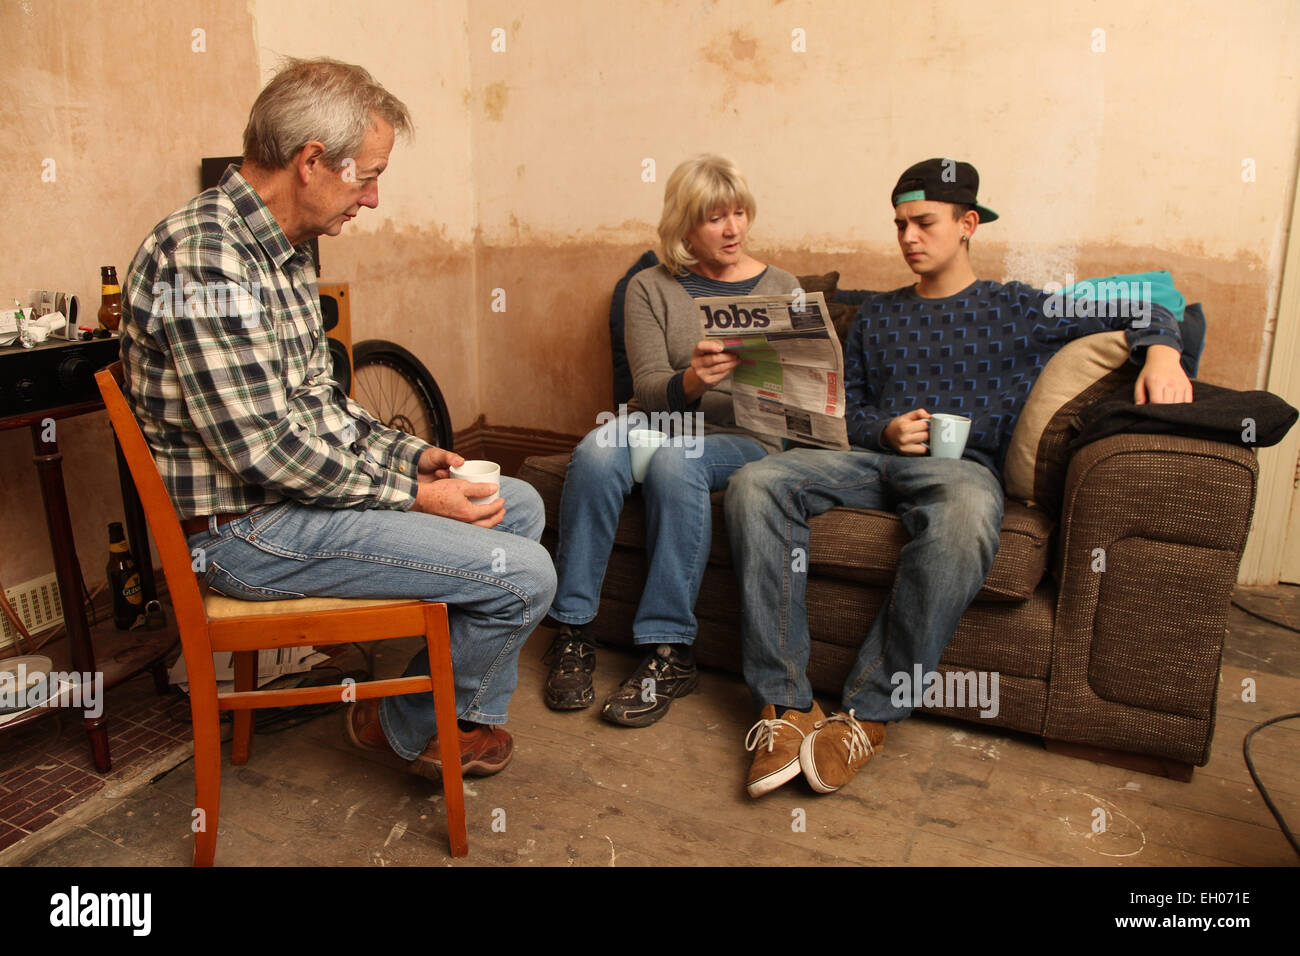 Teenager with grandparents looking at newspaper for jobs - model released - Stock Image